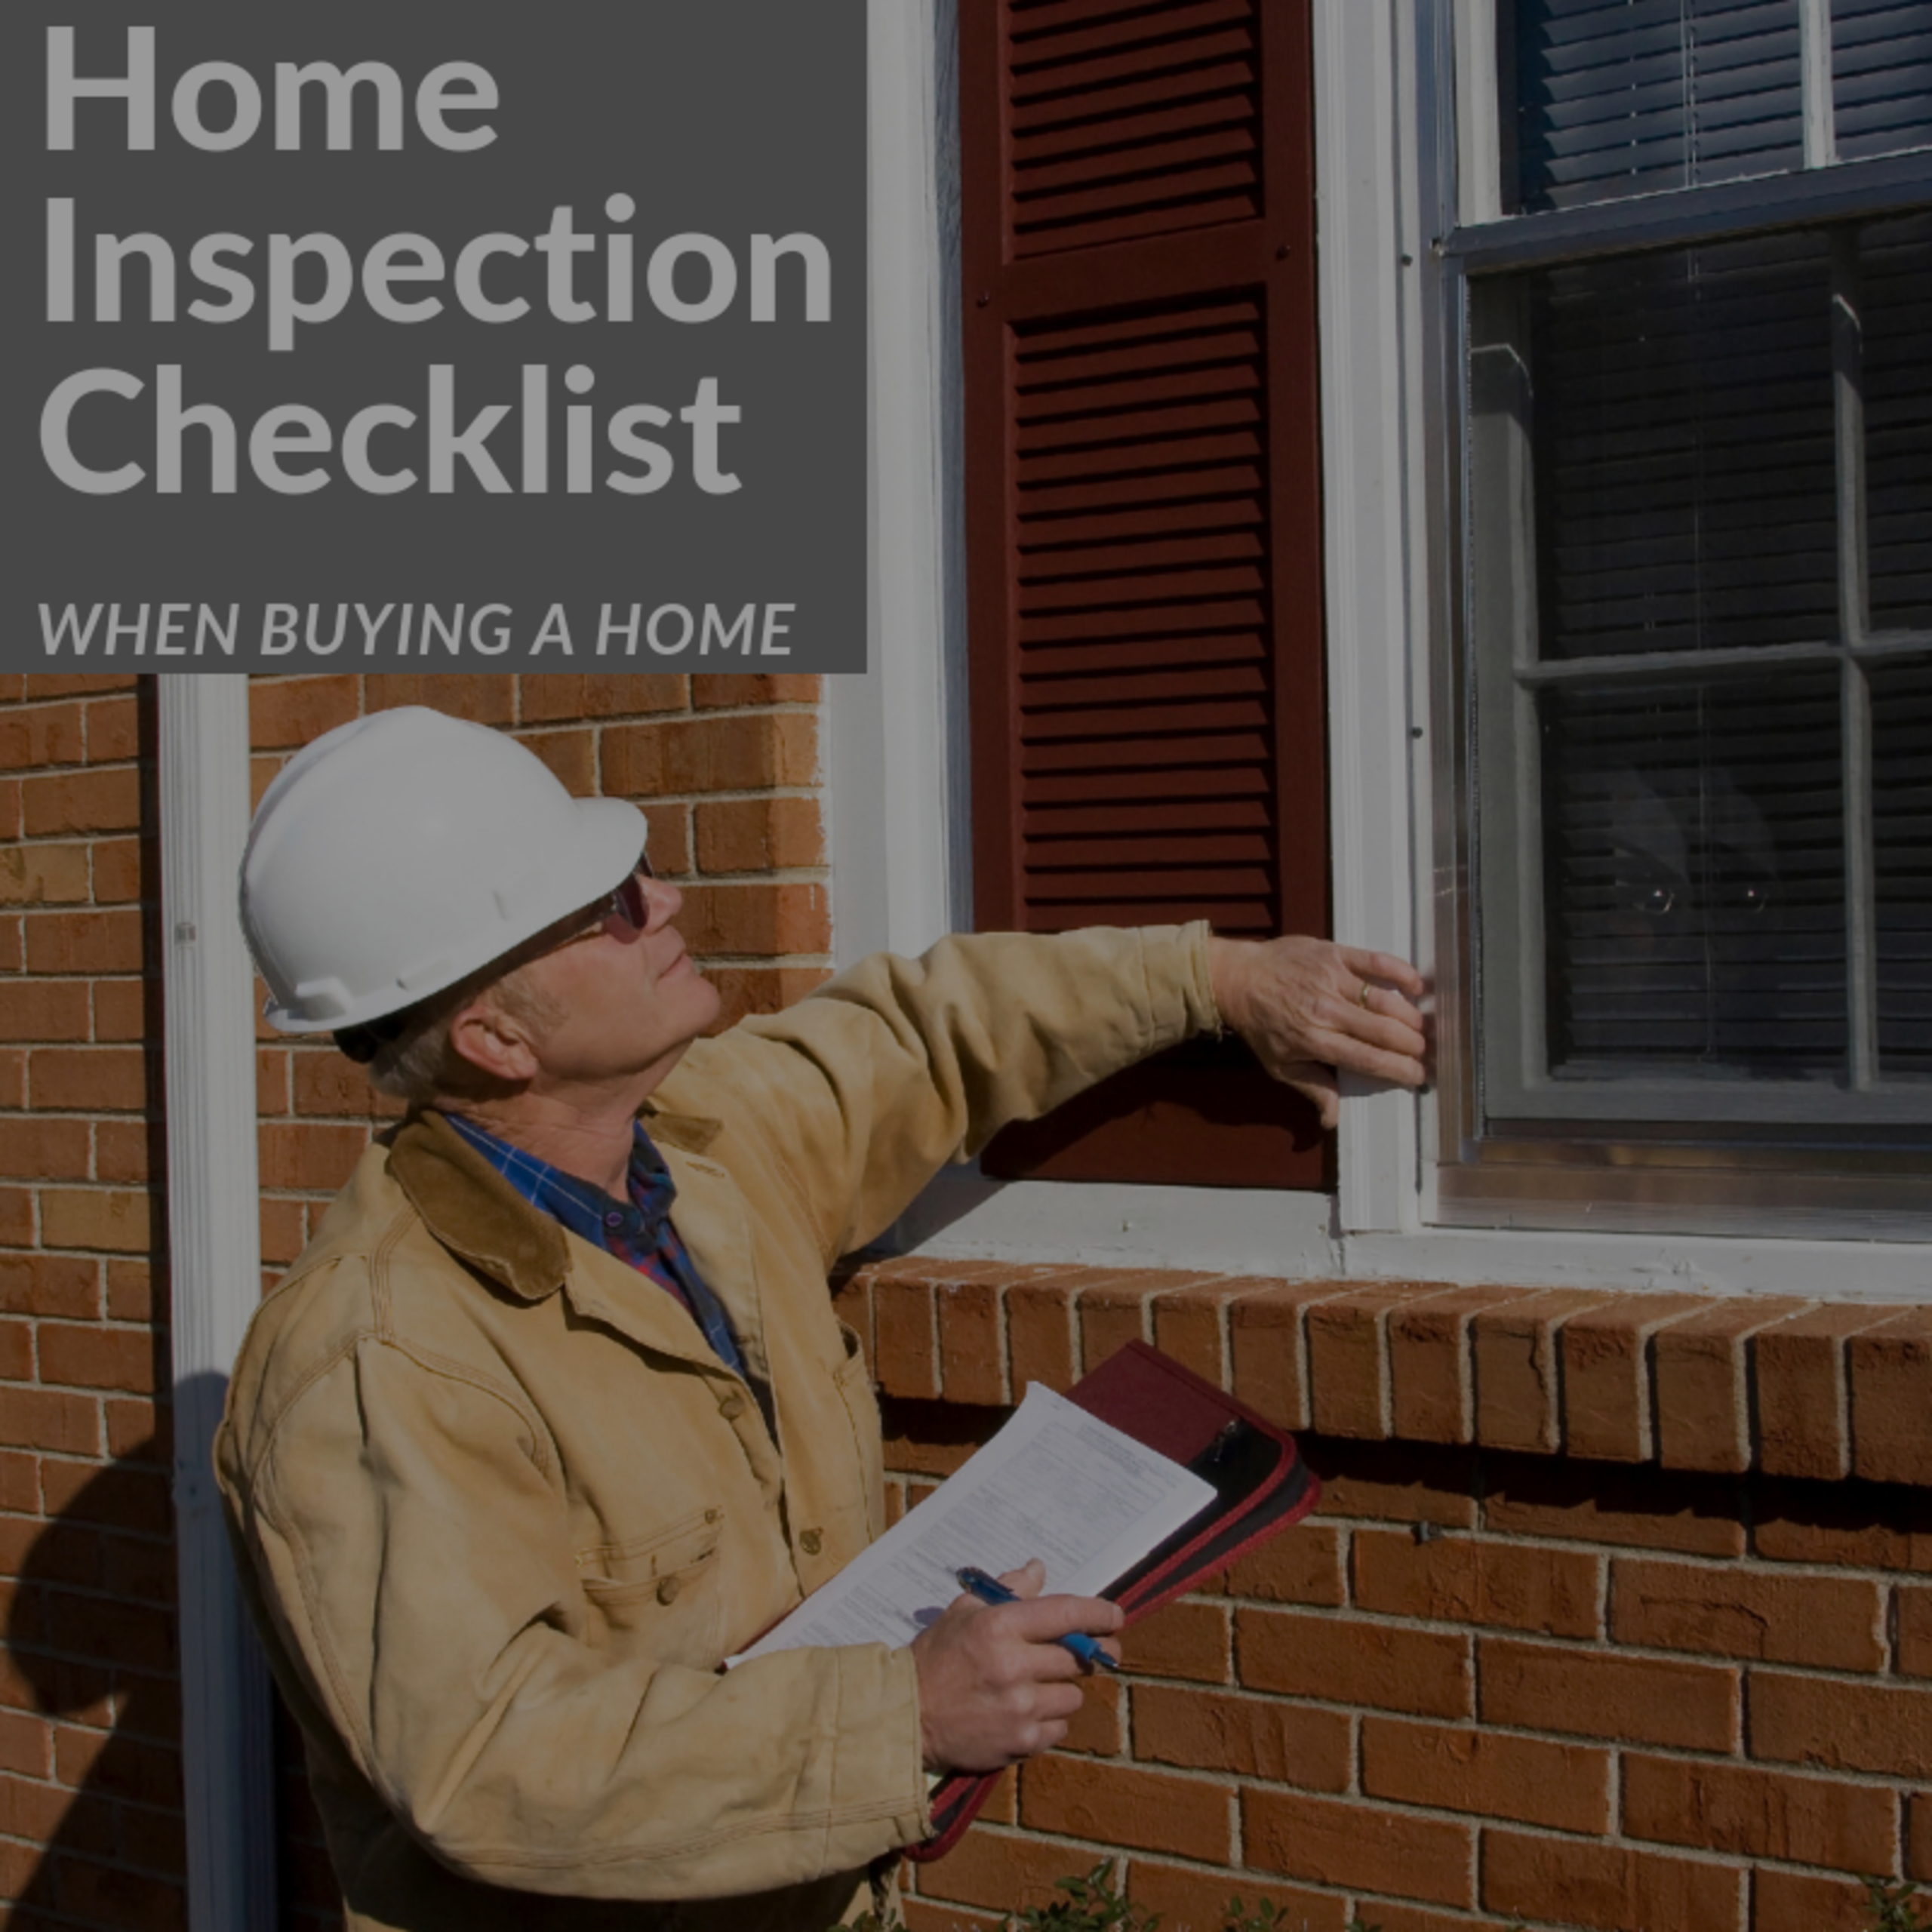 Home Inspection Checklist When Buying A House